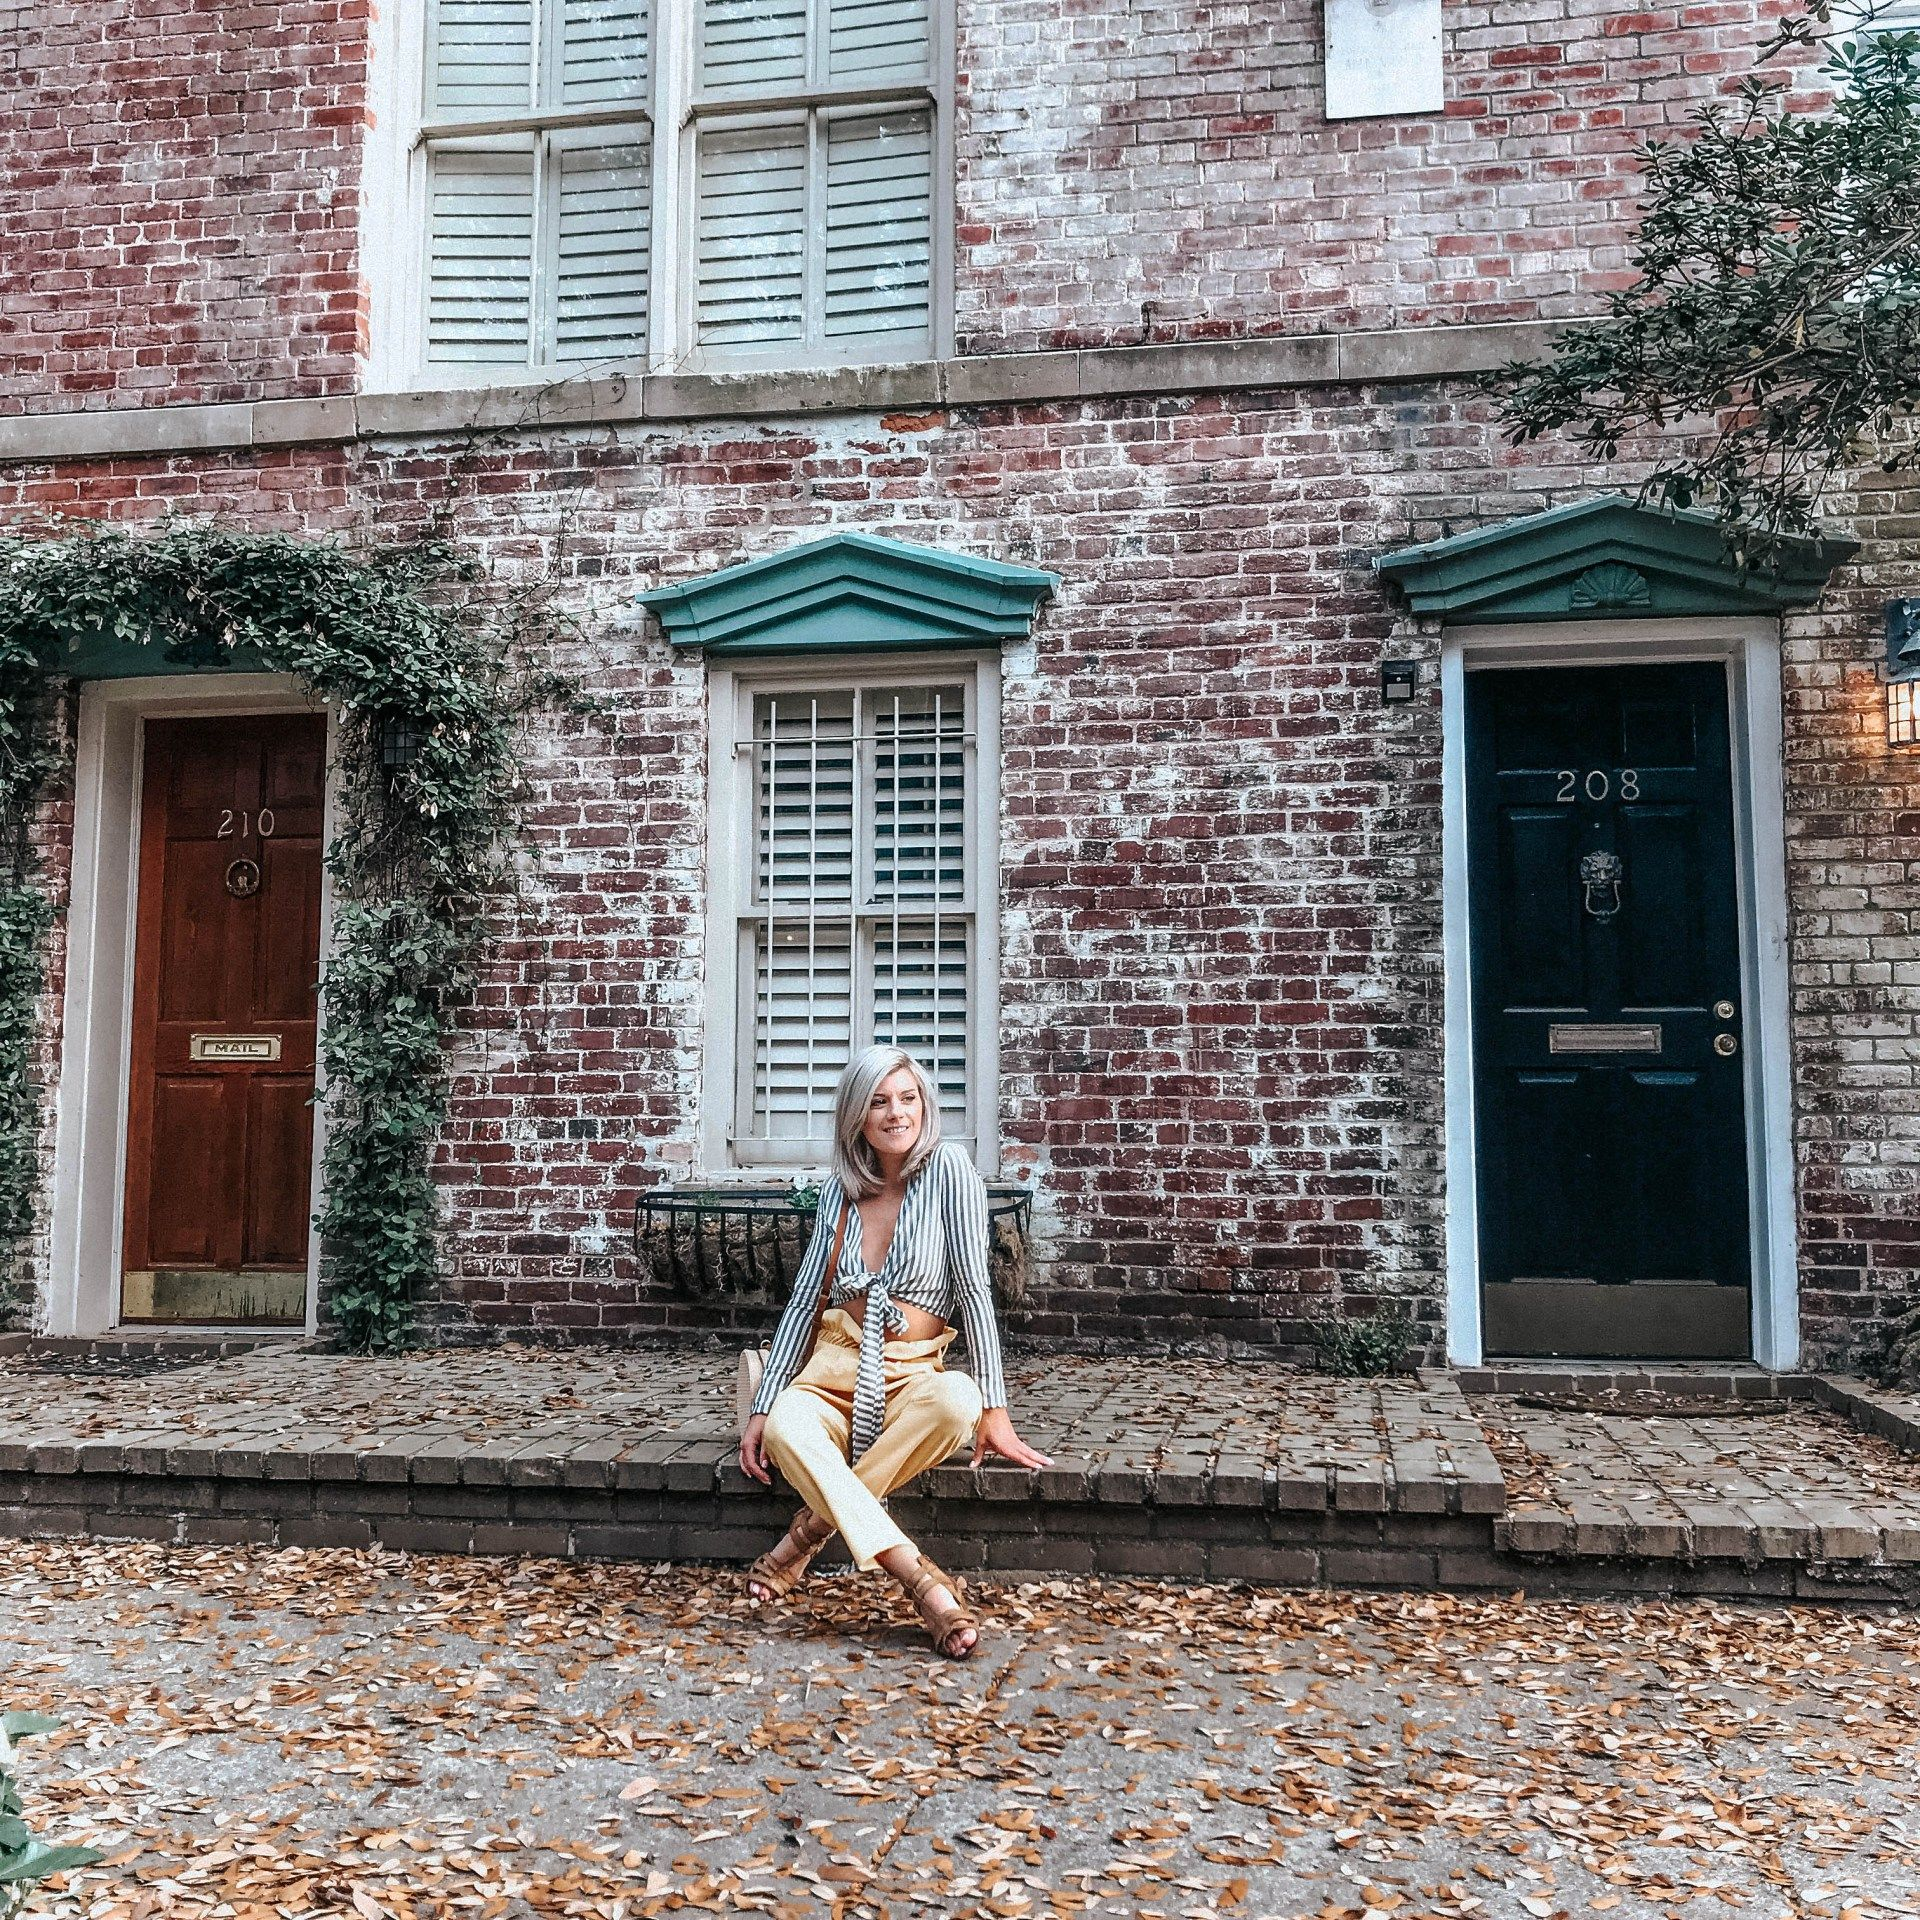 One Day In Savannah Here Are The Best Things To Do In Savannah Ga If You Only Have 24 Hours Savannah Chat Usa Travel Guide Travel Usa